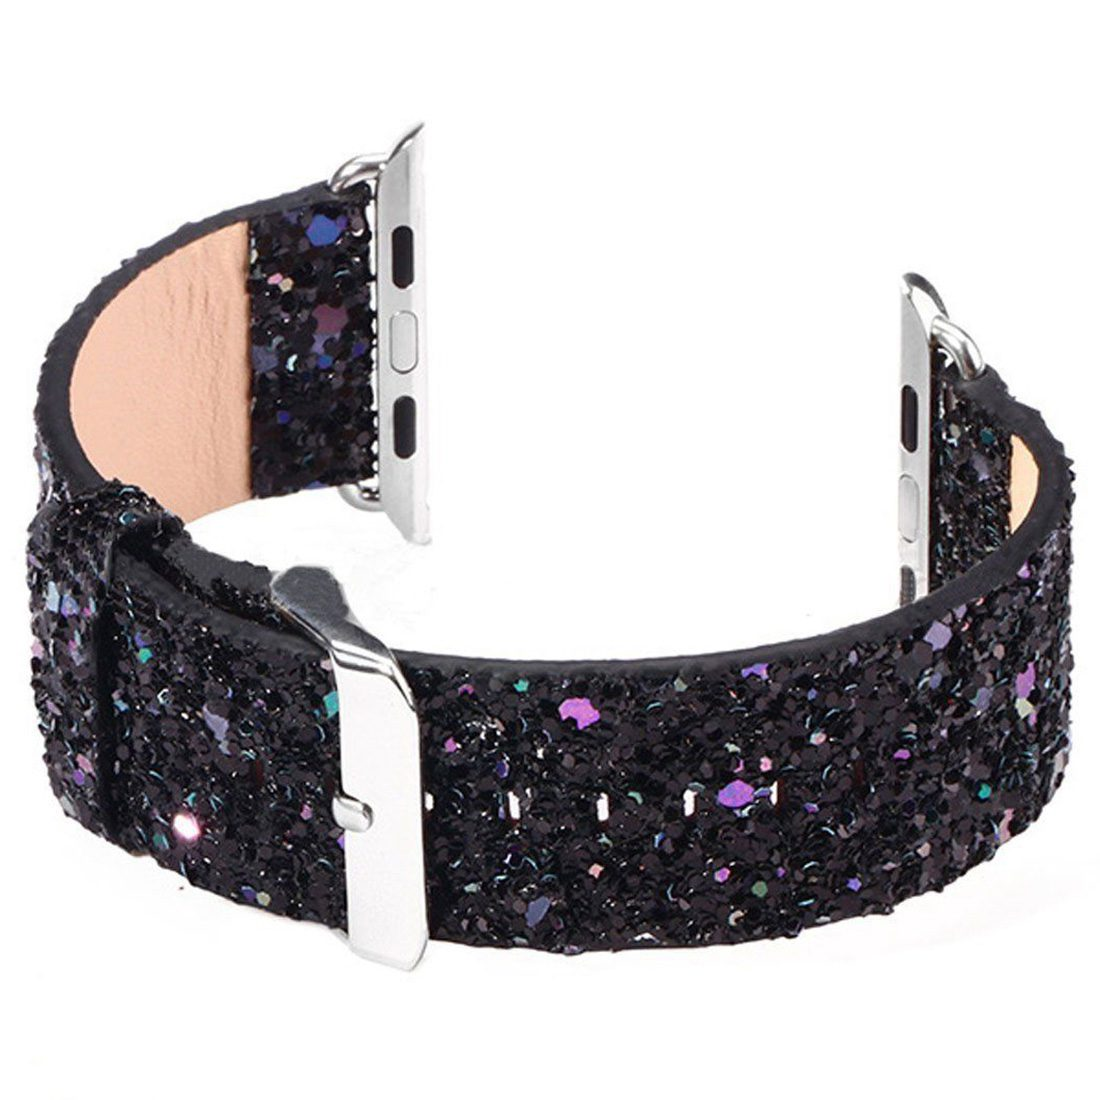 Bling Glitter Leather Watch Clasp Loop Band Strap for Apple Watch 38mm Black брошь patricia bruni patricia bruni mp002xw191it